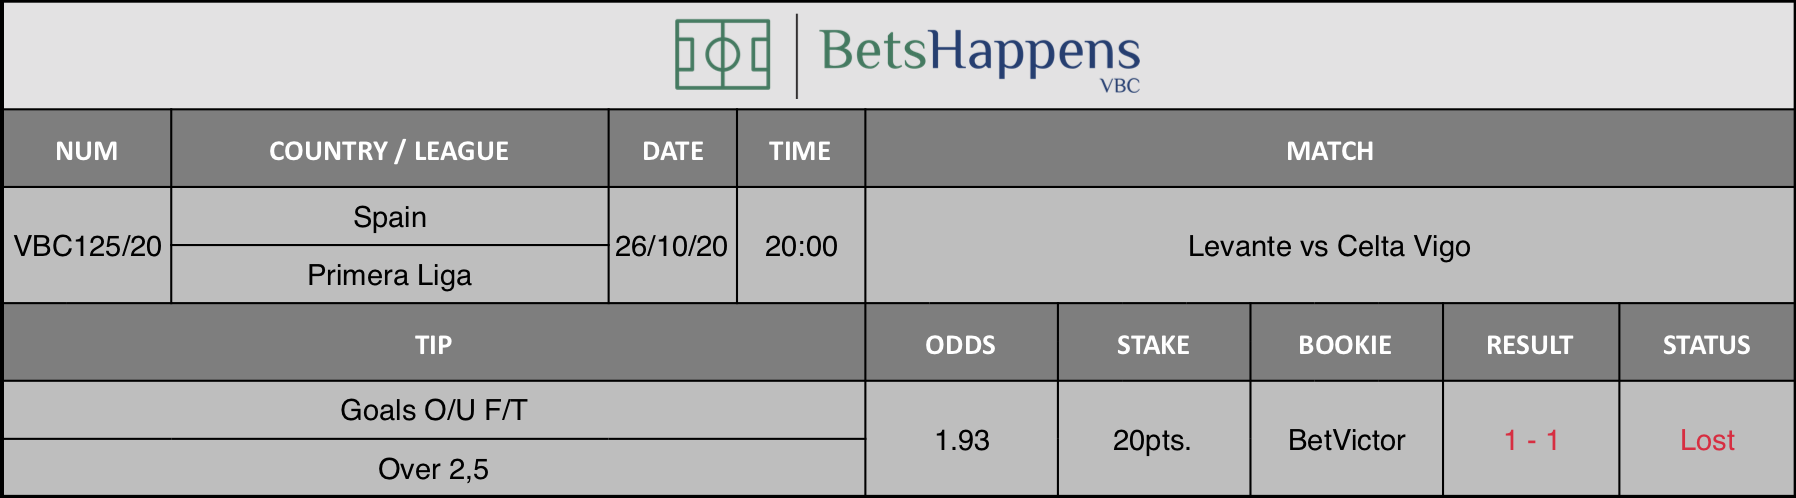 Results of our advice for the Levante vs Celta Vigo match in which Goals O / U F / T Over 2,5 is recommended.